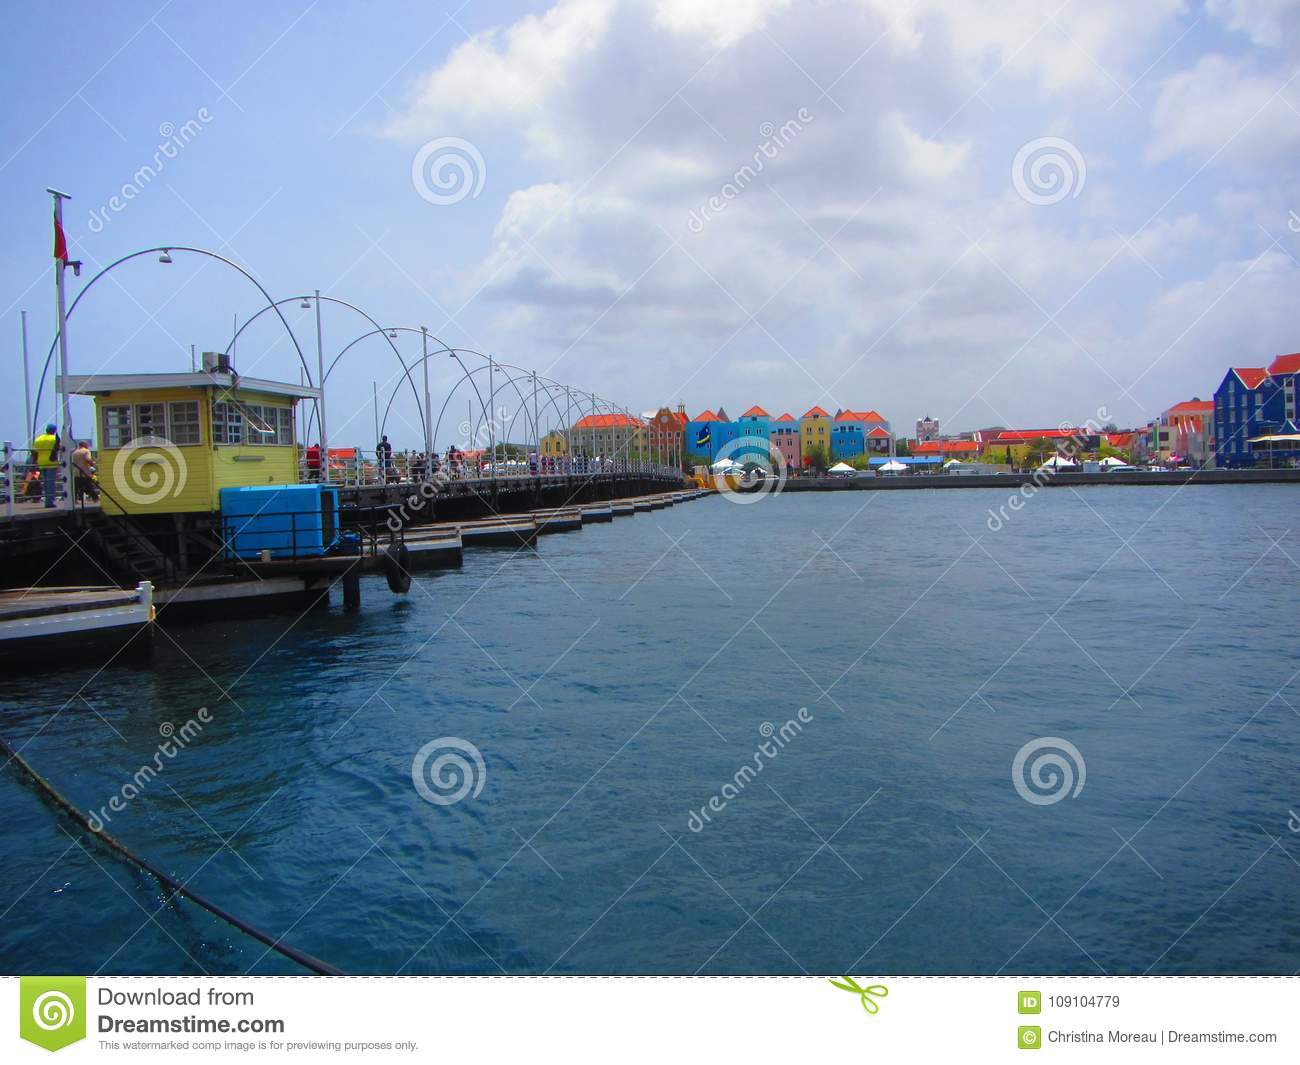 Rainha Emma Swing Bridge Willemstad Curacao